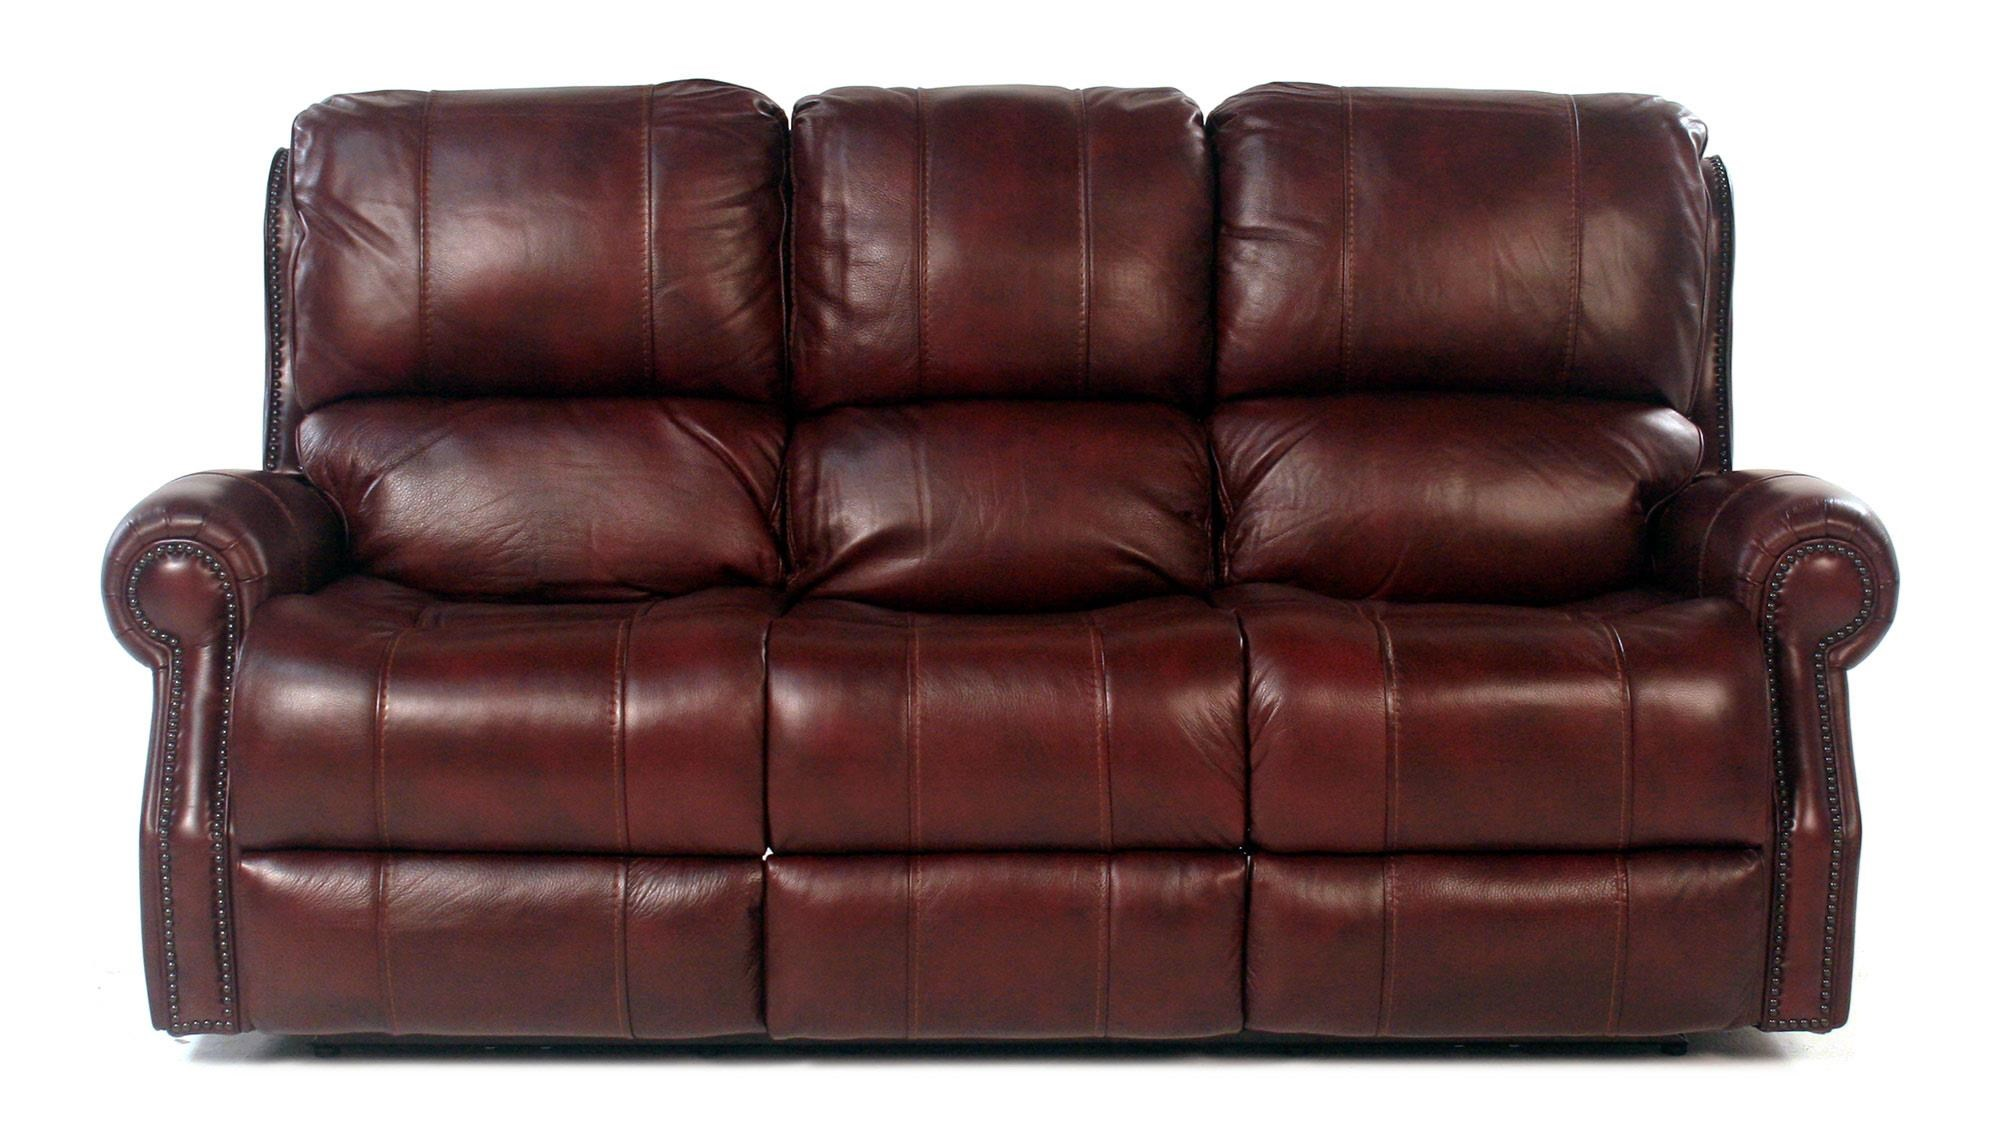 Traditional Power Reclining Sofa with Rolled Arms and Nailheads